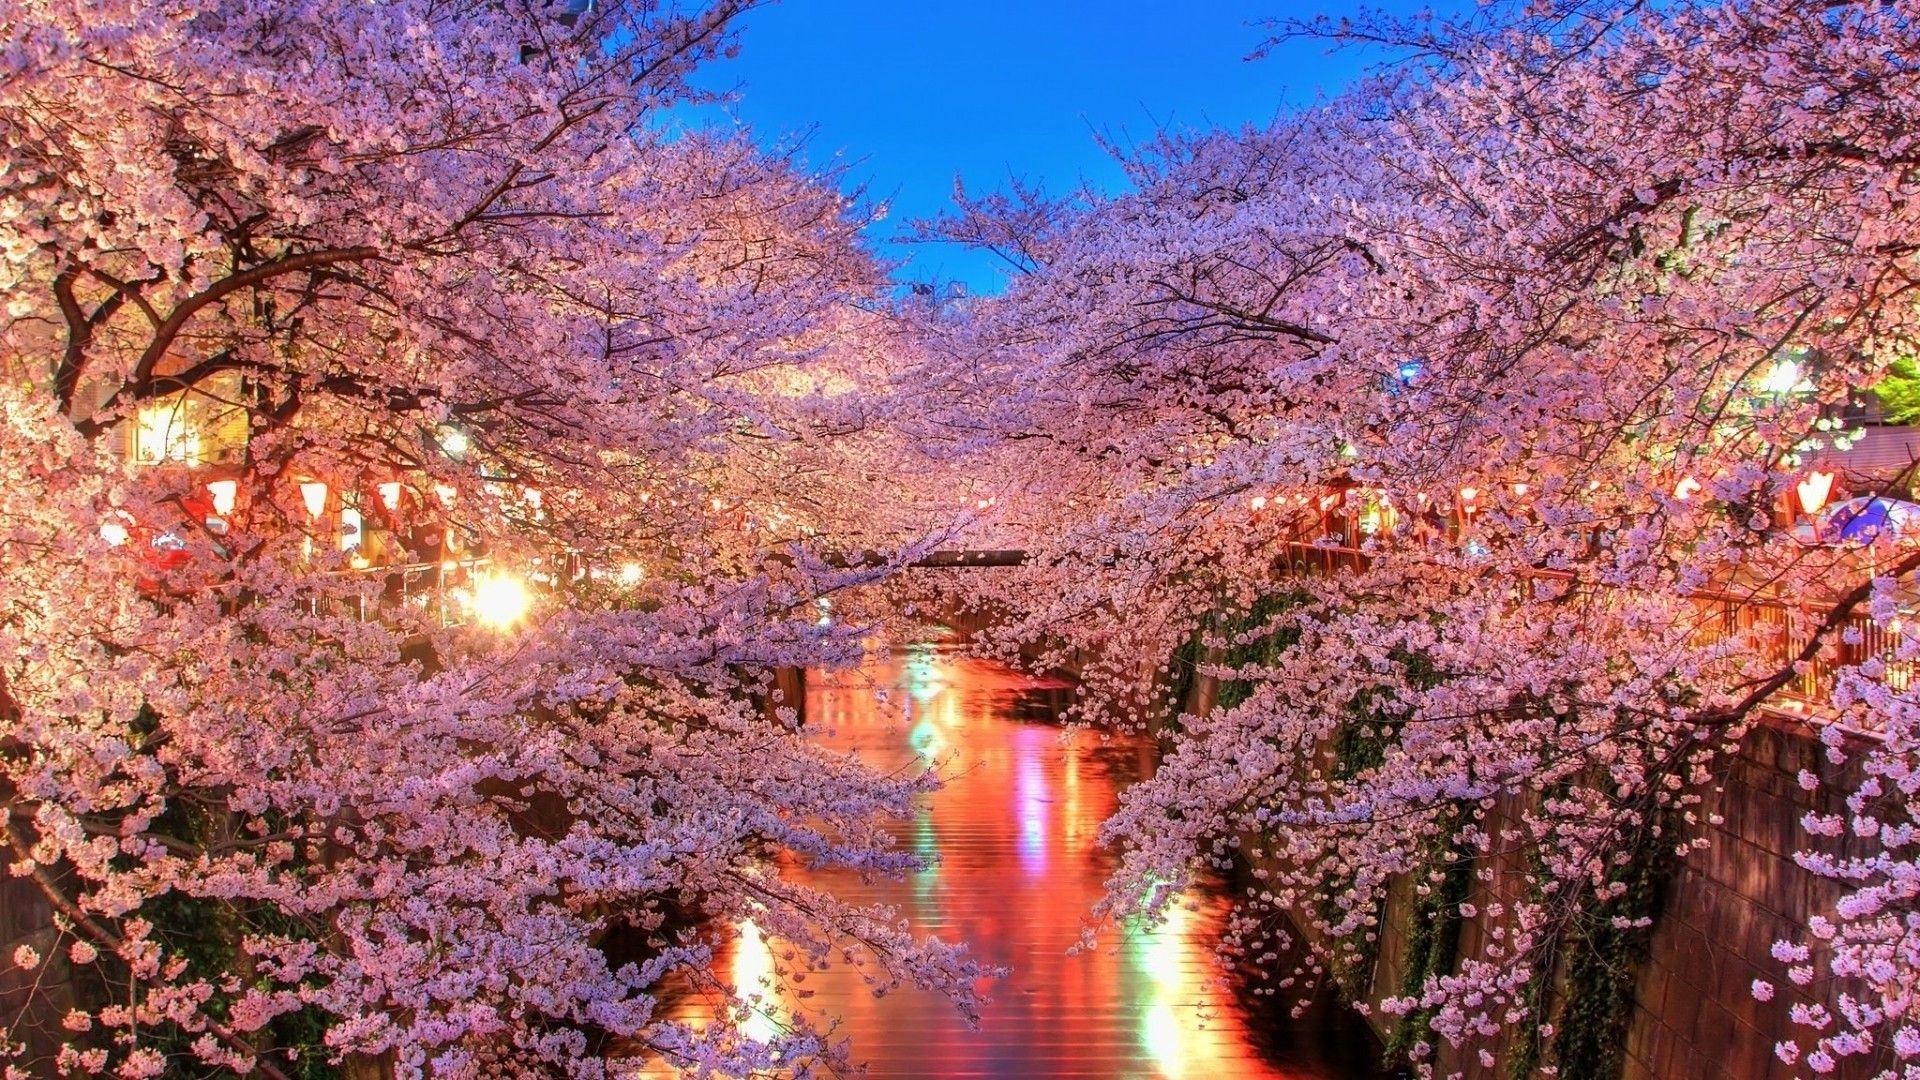 japanese cherry blossom wallpaper 1080p wallpaper | green thumb